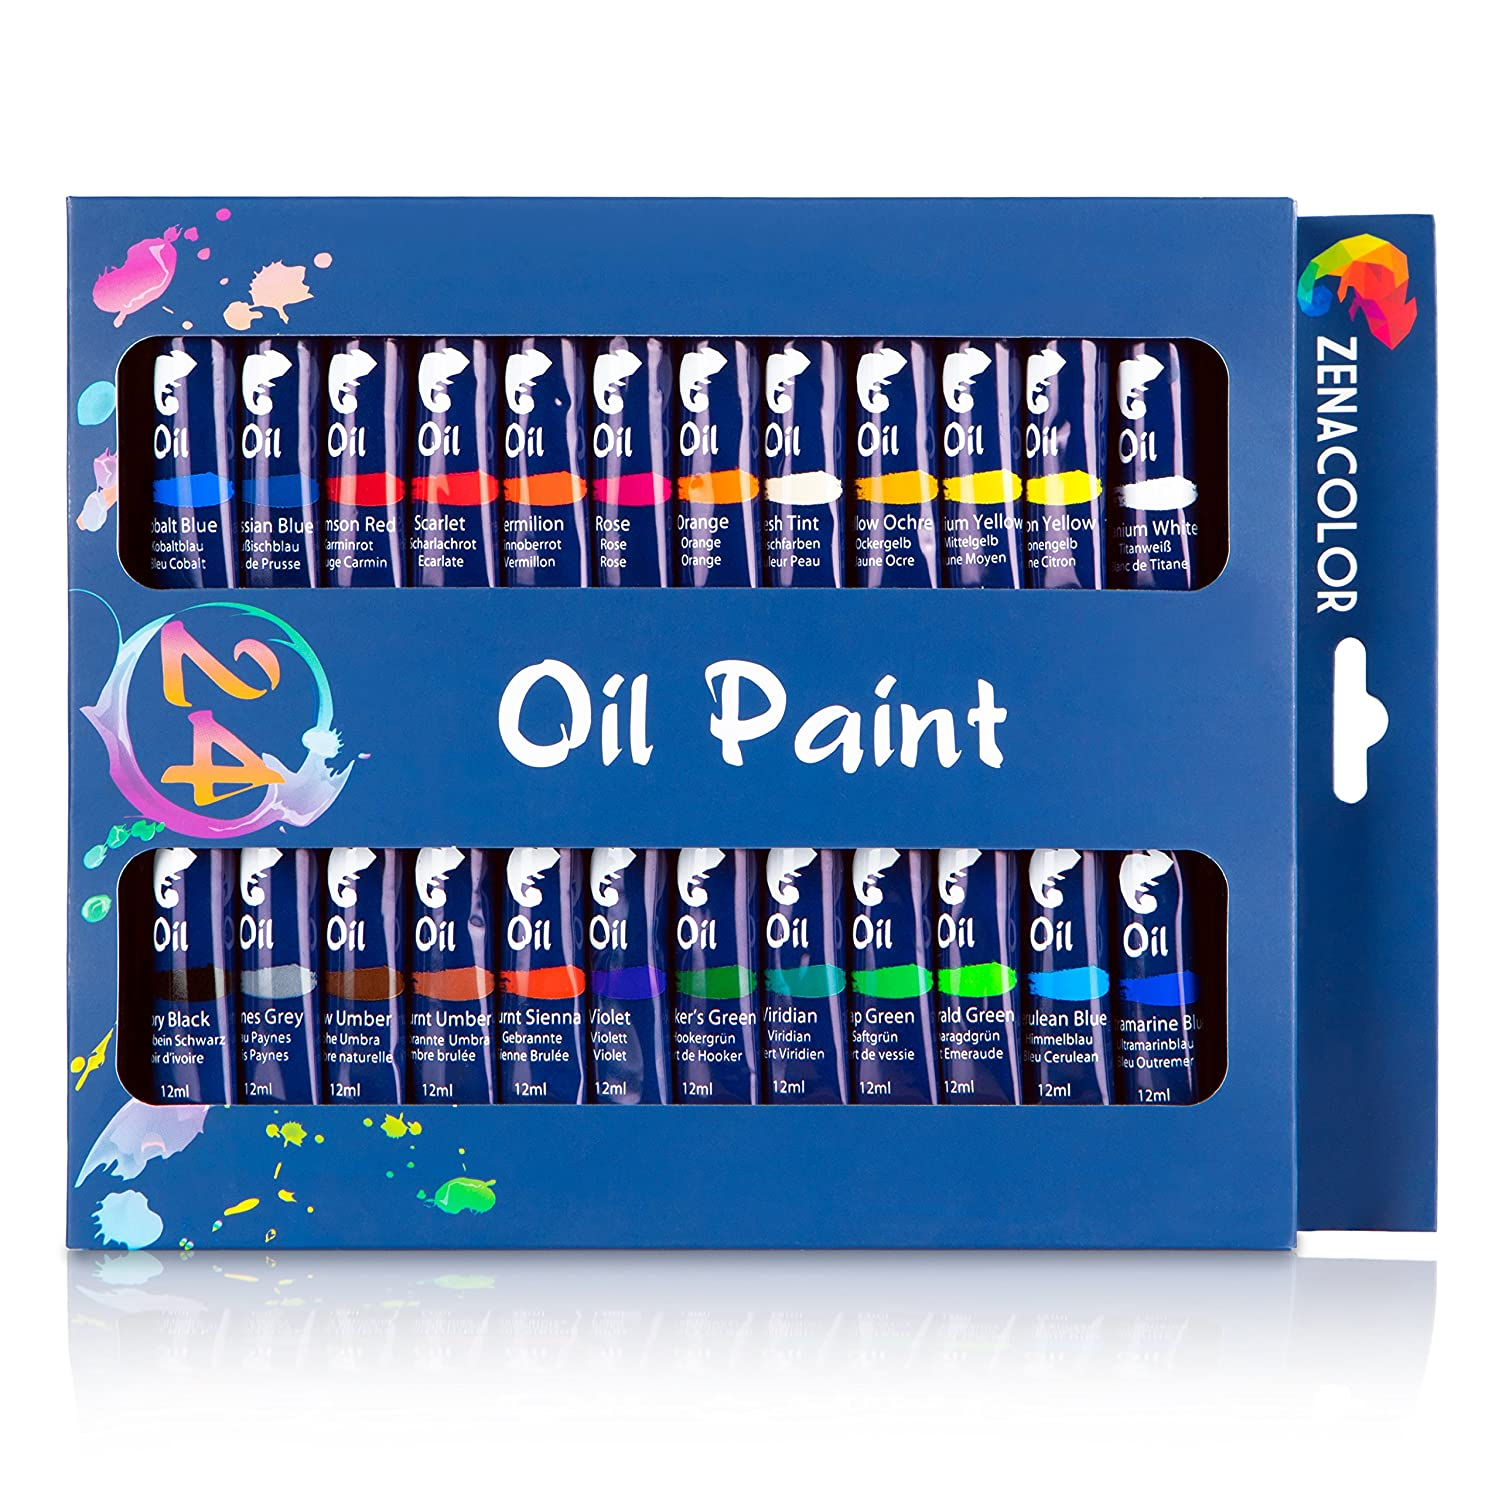 24-tube oil paint set by Zenacolor – pack of 24 x 12ml paint tubes - High-quality non-toxic paint - 24 unique and different colors - Perfect for beginners and professionals alike - Dense and rich pigments – Can easily be used on canvas, clay, wallpapers o